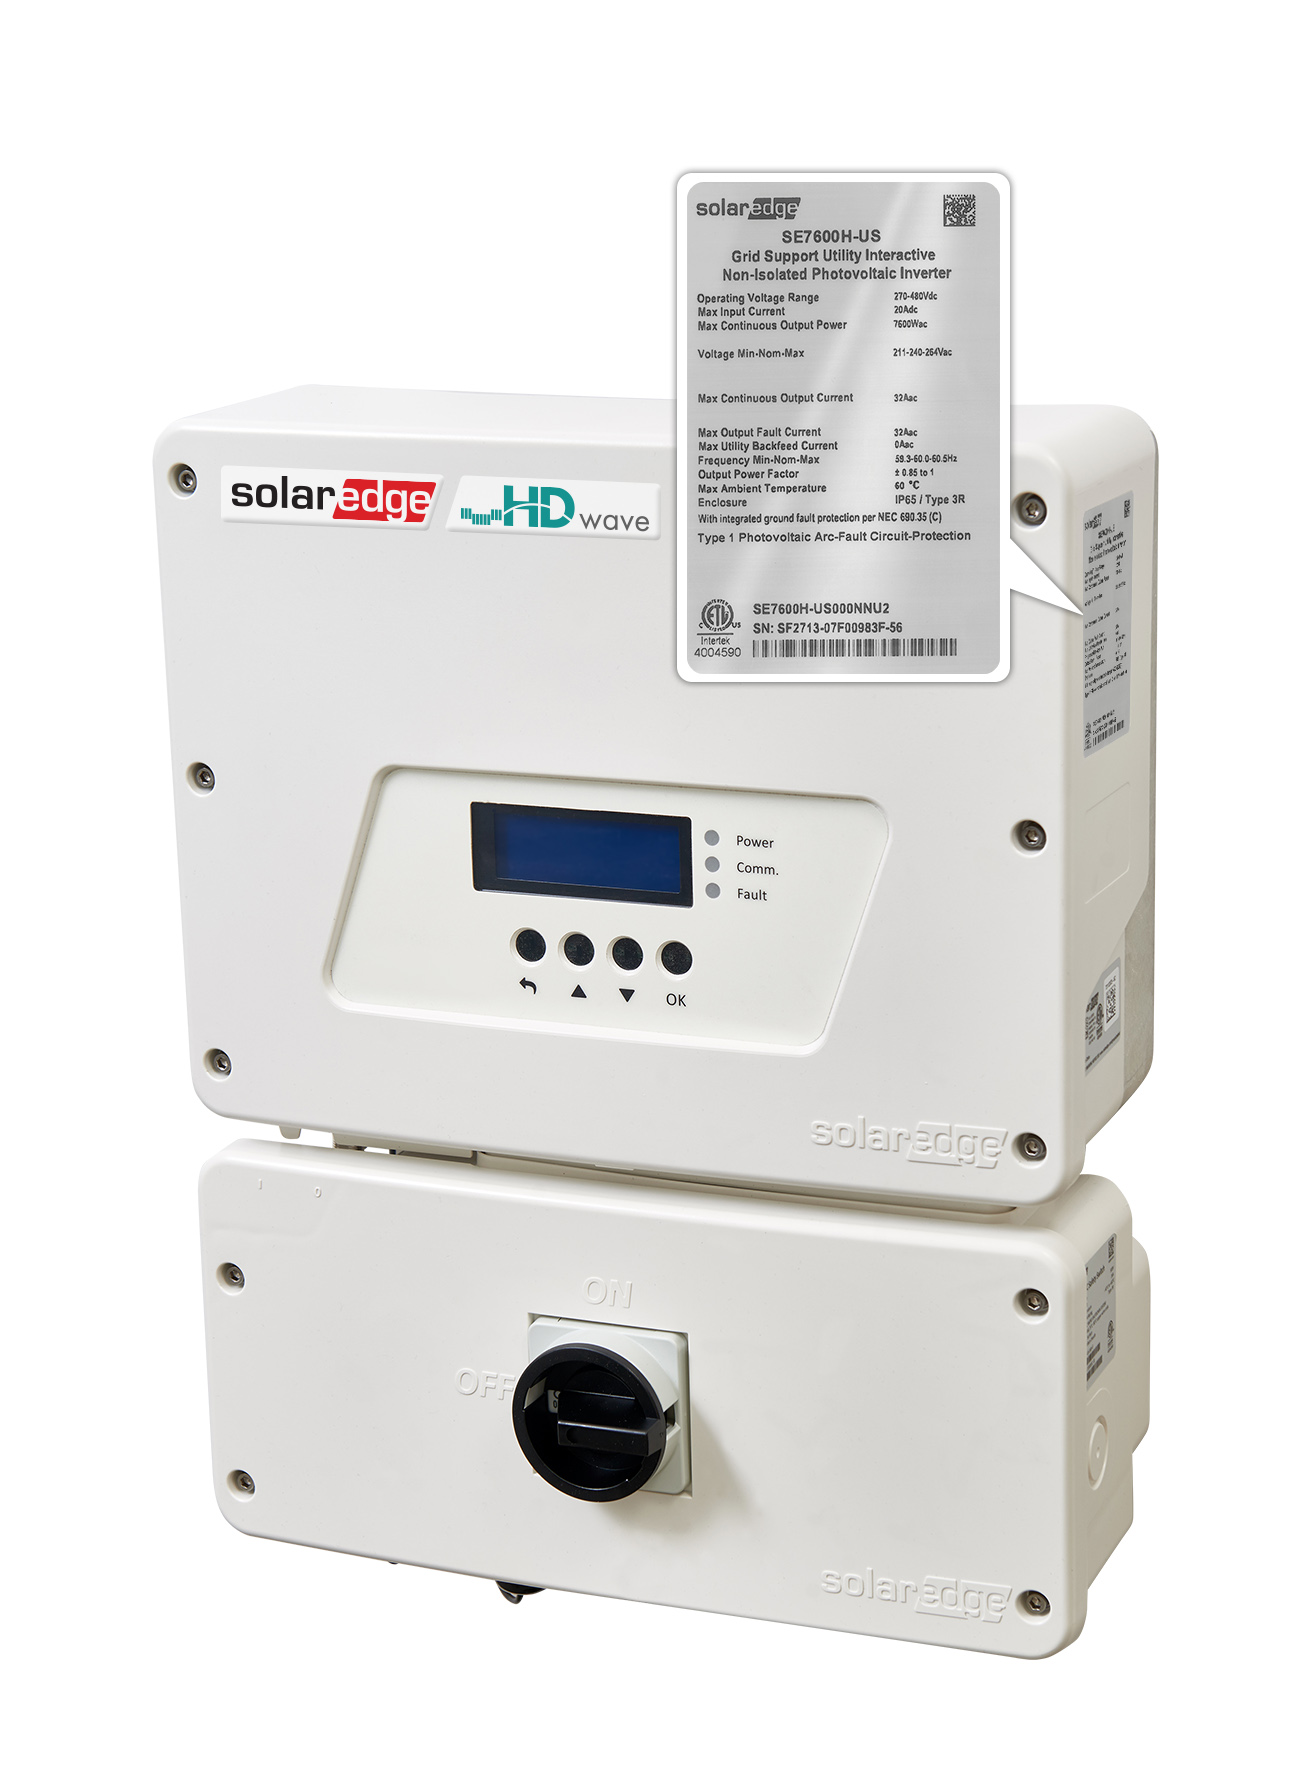 SolarEdge noted that its US range of inverters would be labelled for compliance as a 'Grid Support Utility Interactive Inverter and would provide smart inverter features to PV system owners and utilities. Image: SolarEdge Technologies